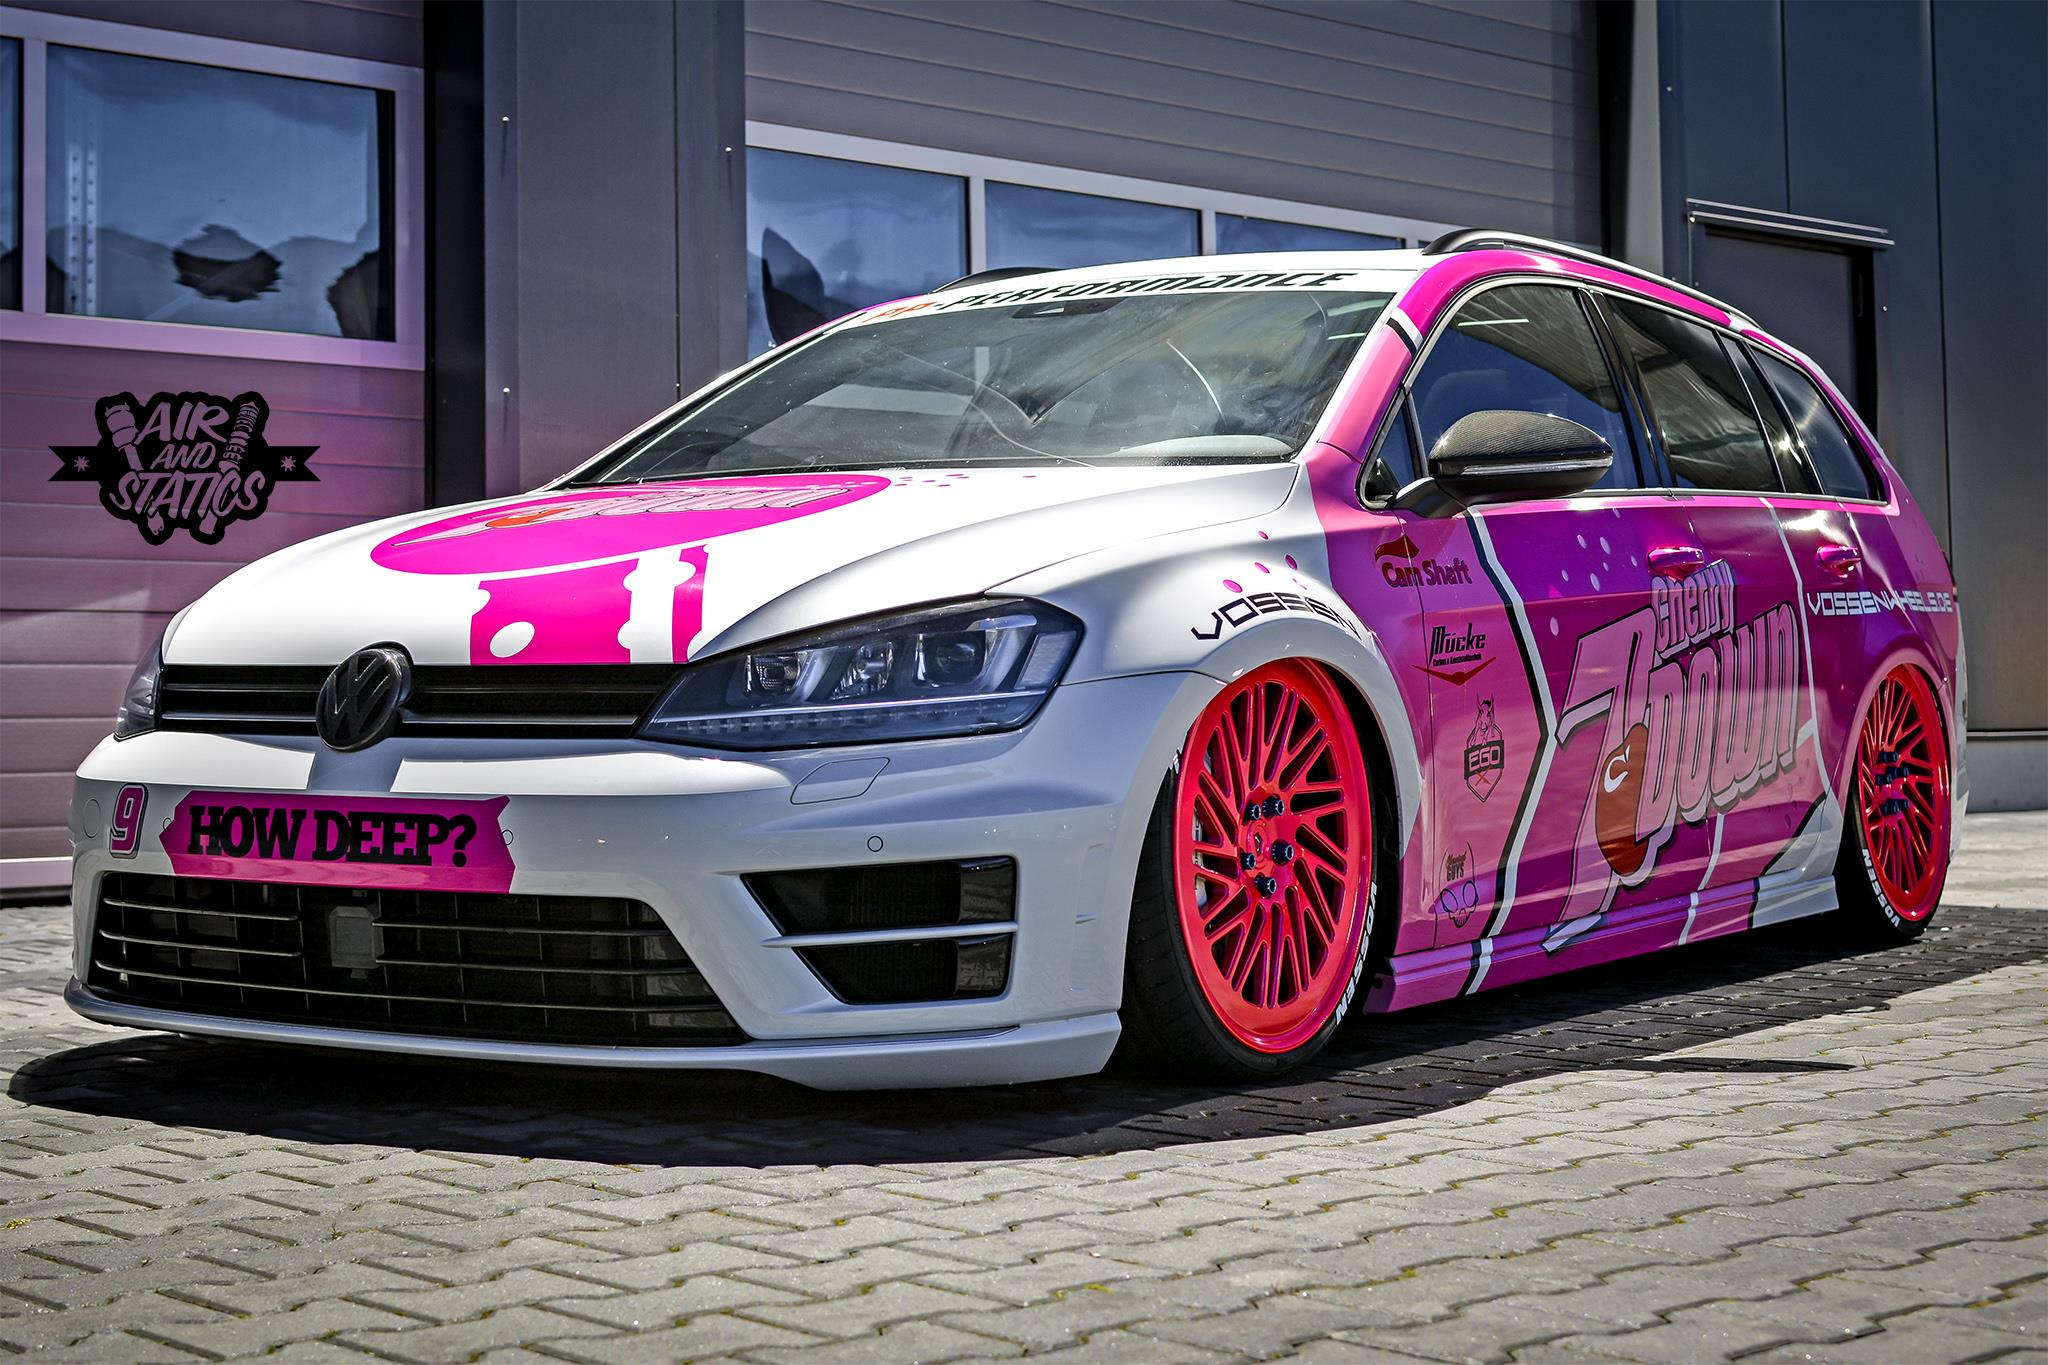 7down 2 0 is a lowered golf r variant in pink autoevolution. Black Bedroom Furniture Sets. Home Design Ideas